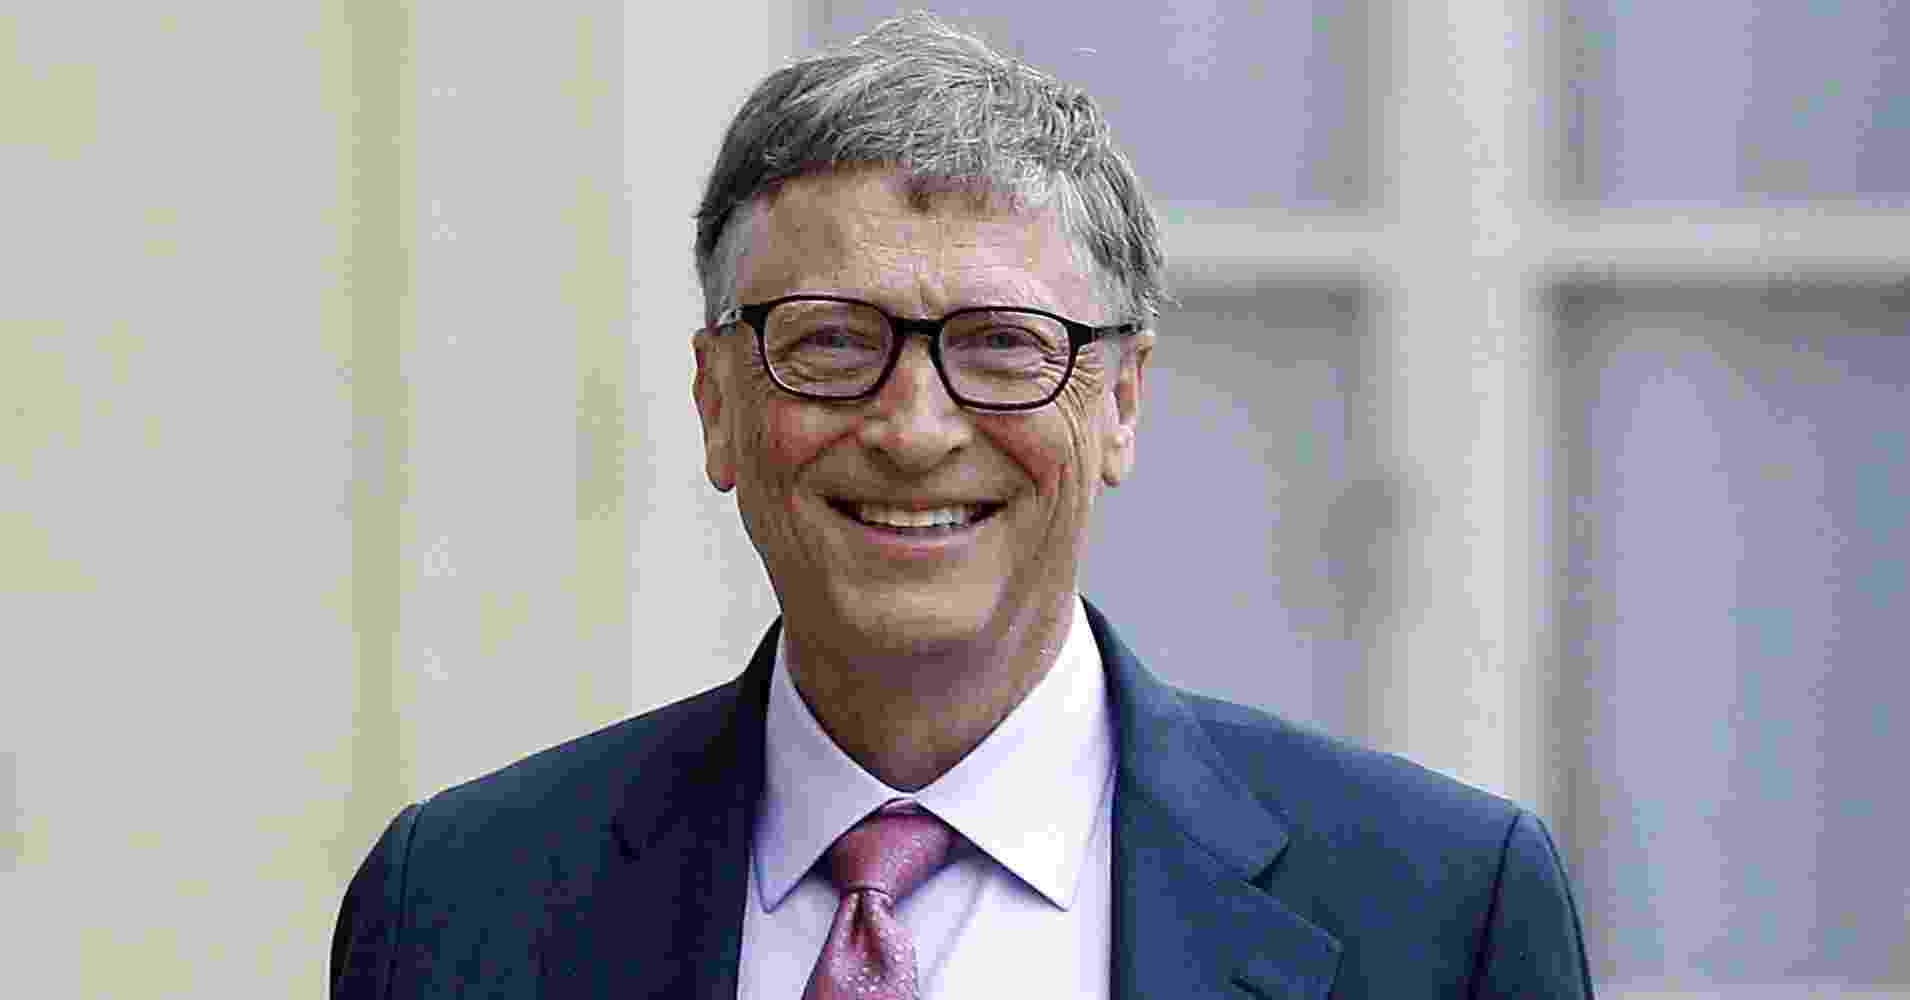 Bill Gates - Chesnot/Gettty Images